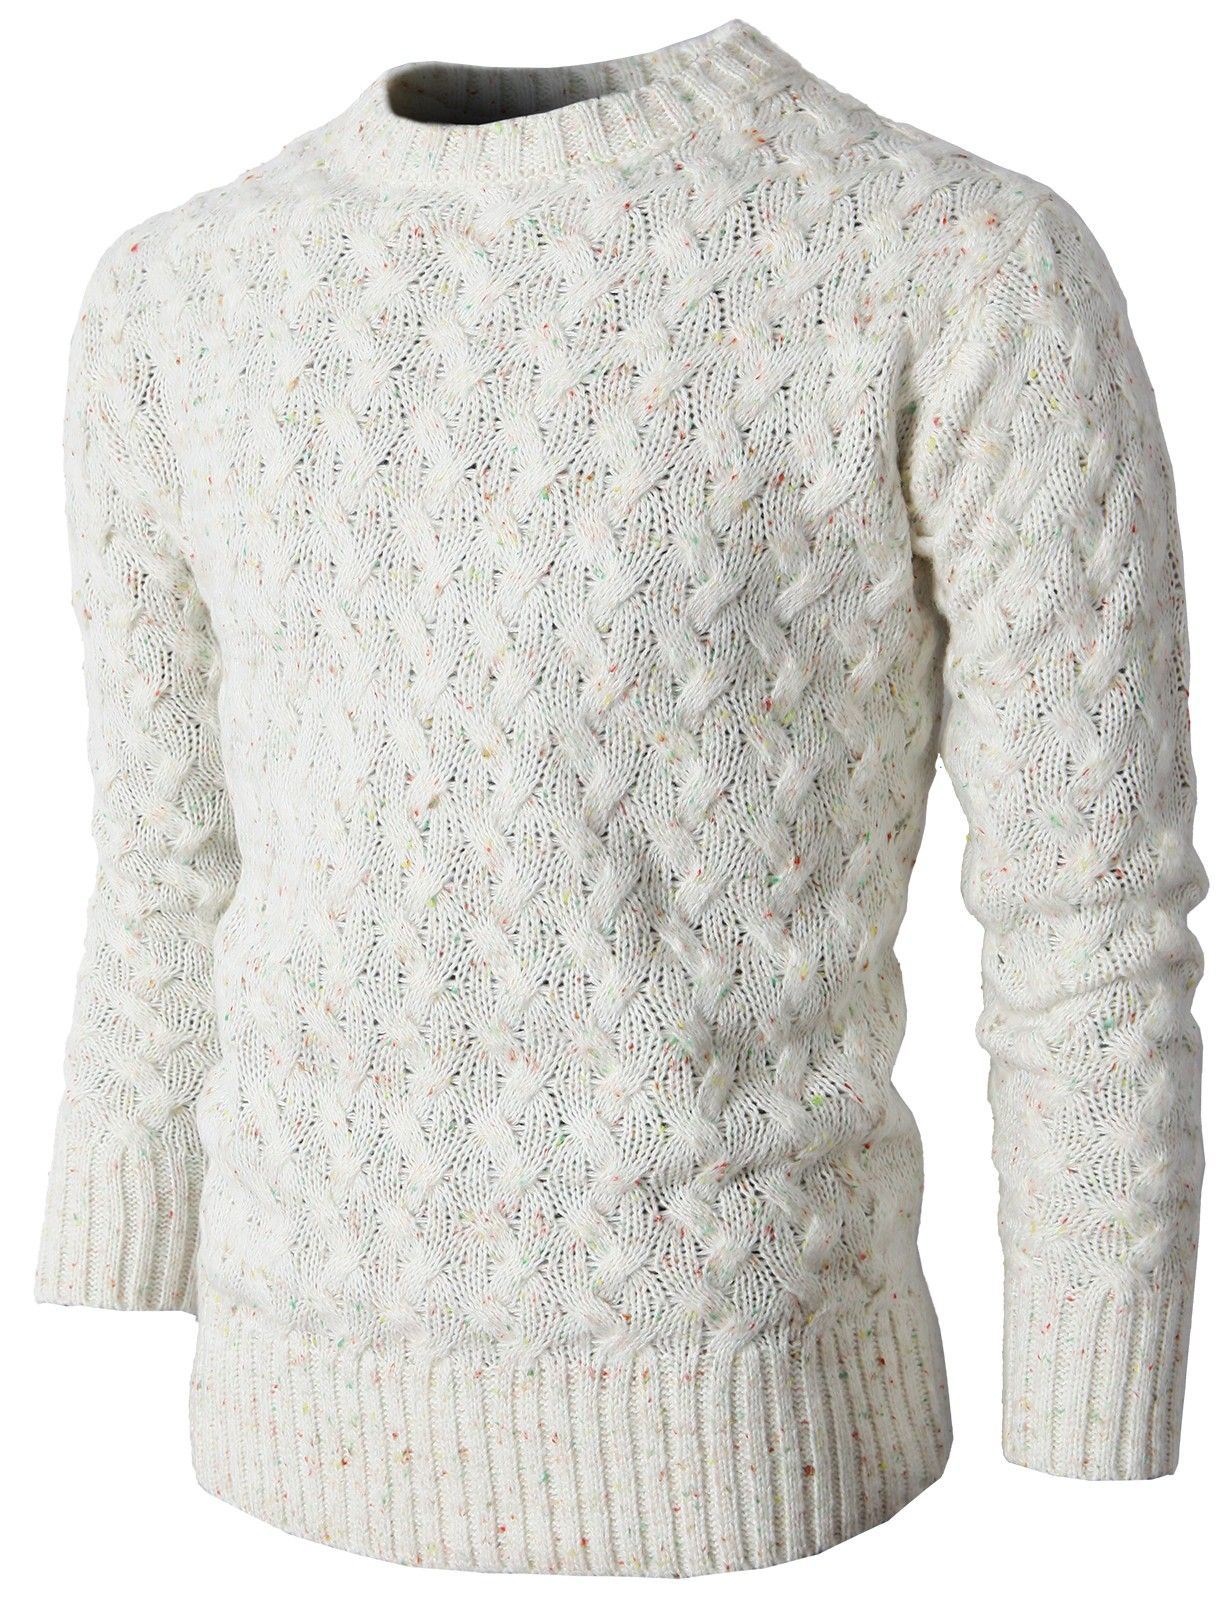 10+ Best Men Casual Sweaters images | men casual, casual